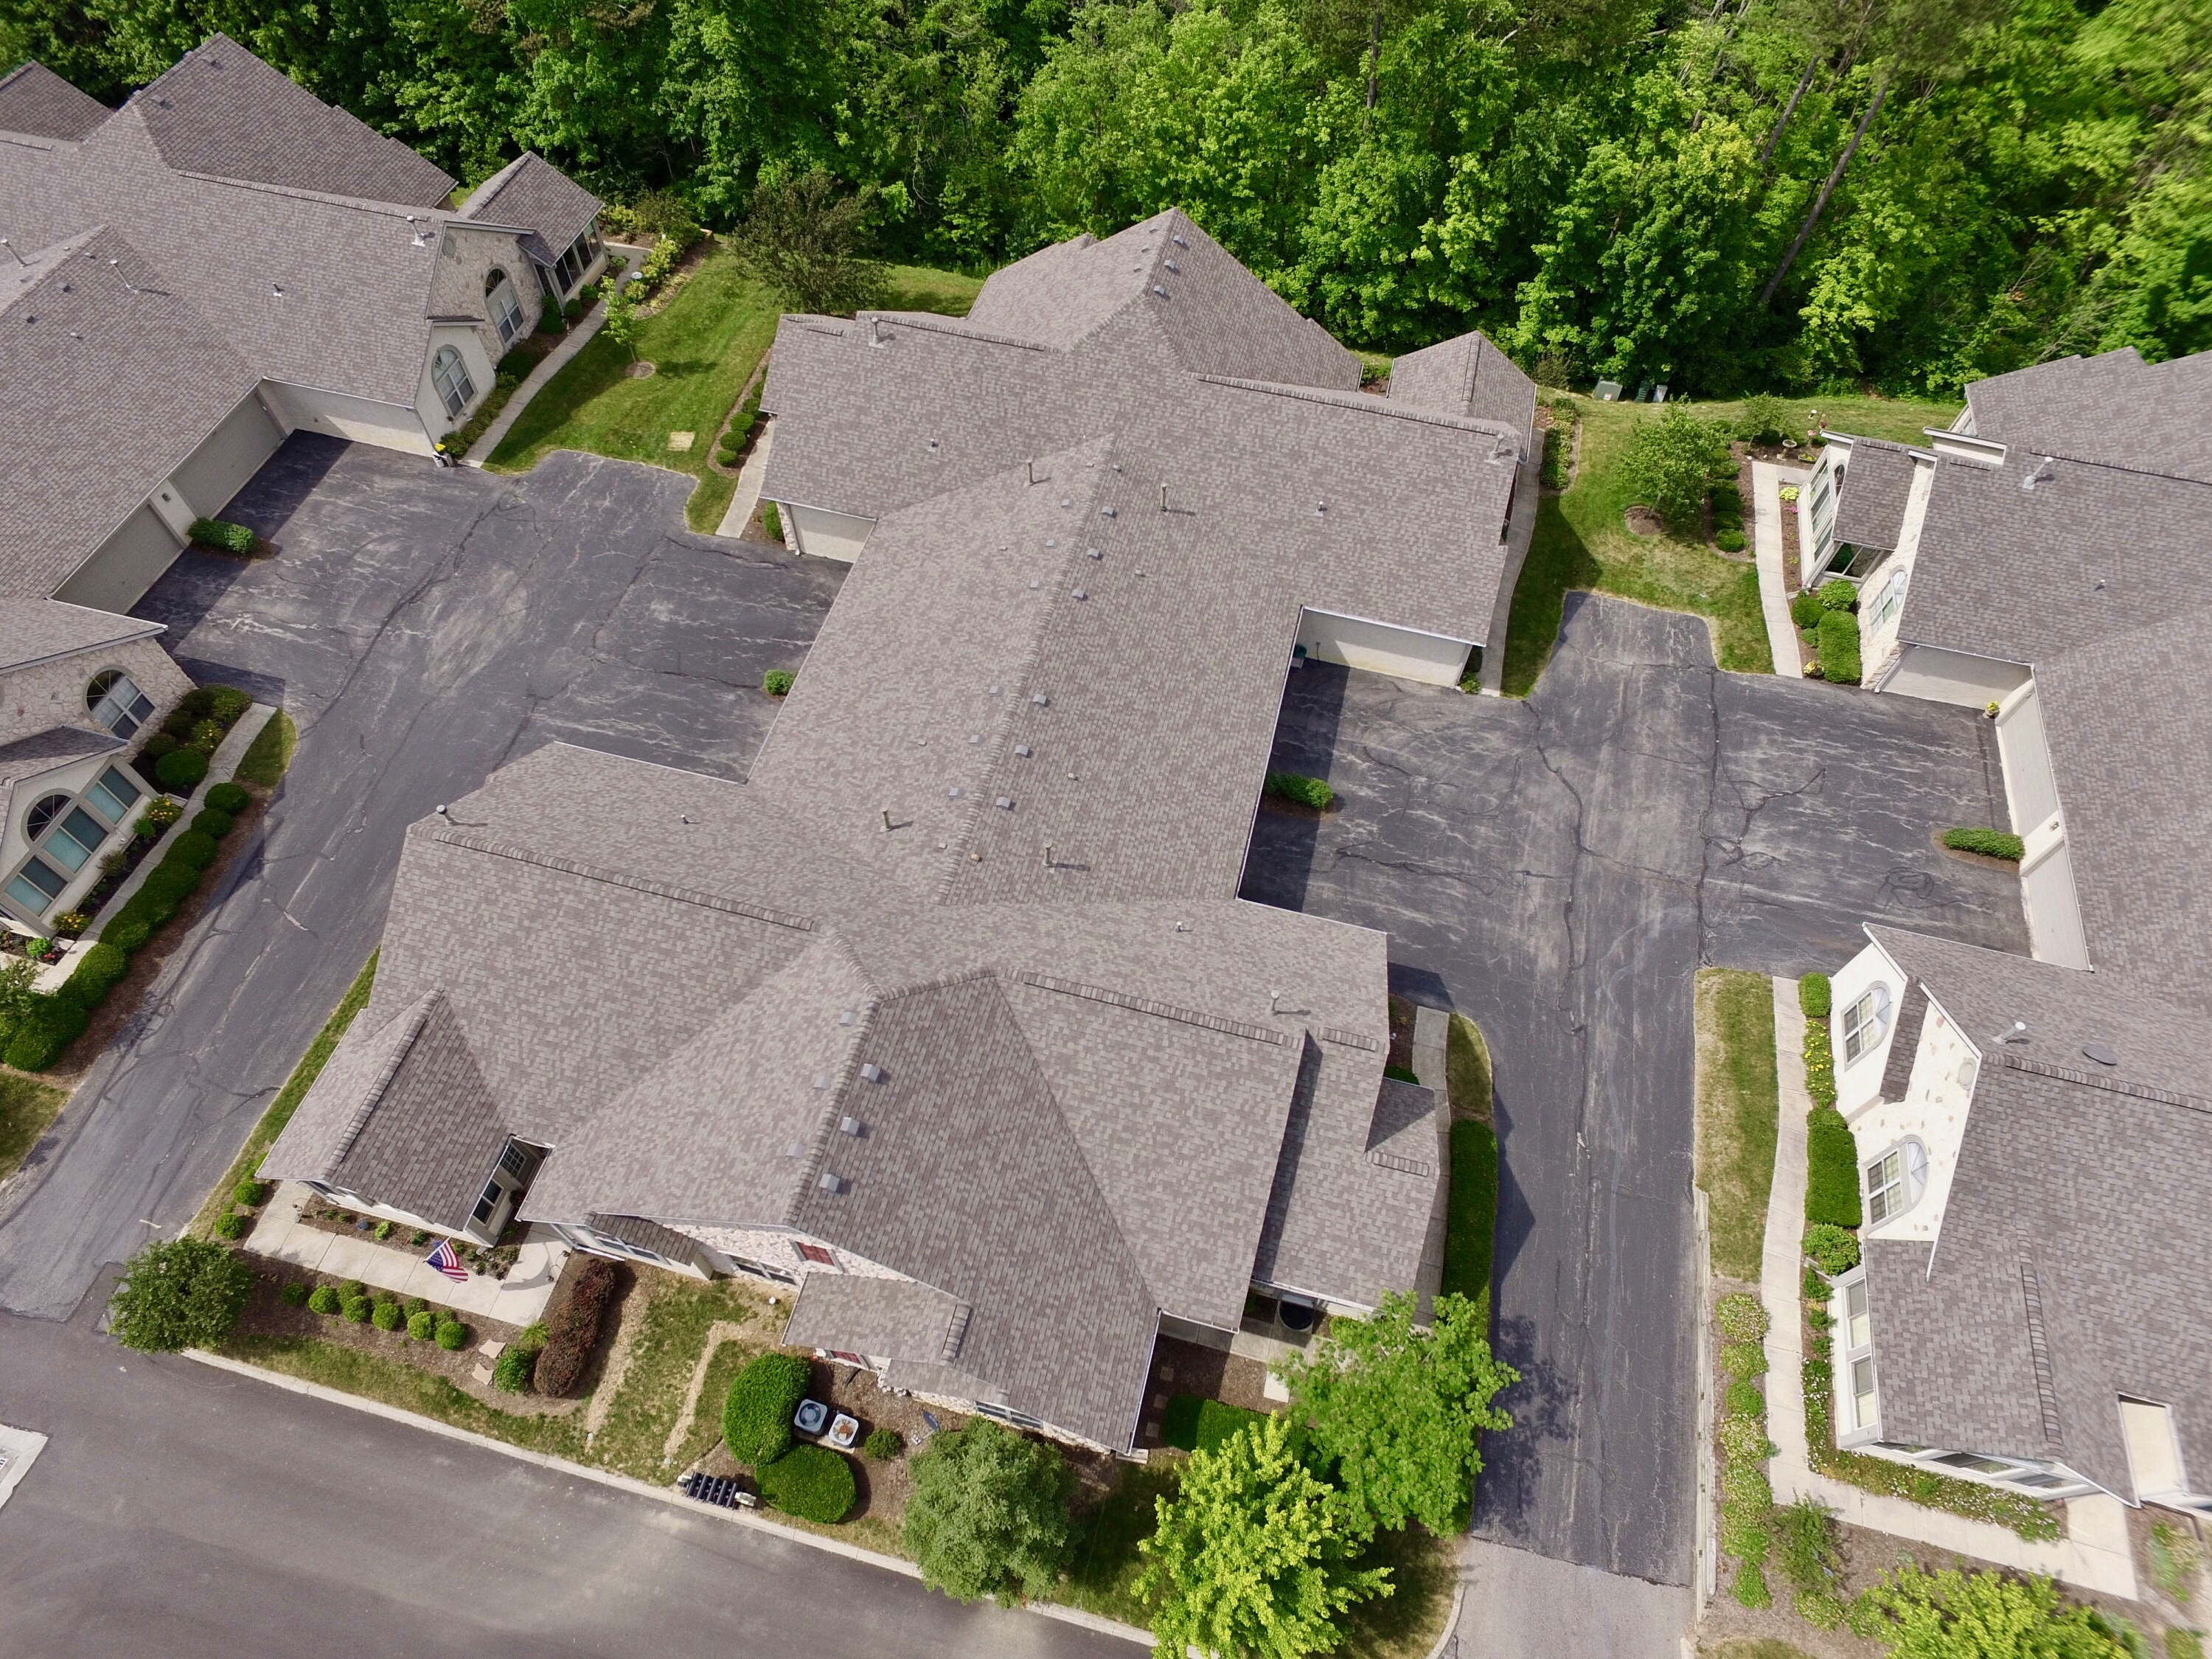 Perfect Benchmark Roofers Of Columbus Ohio Can Handle Any Residential Or Commercial  Improvement Project. We Have More Than 50 Years Of Combined Roofing, ...